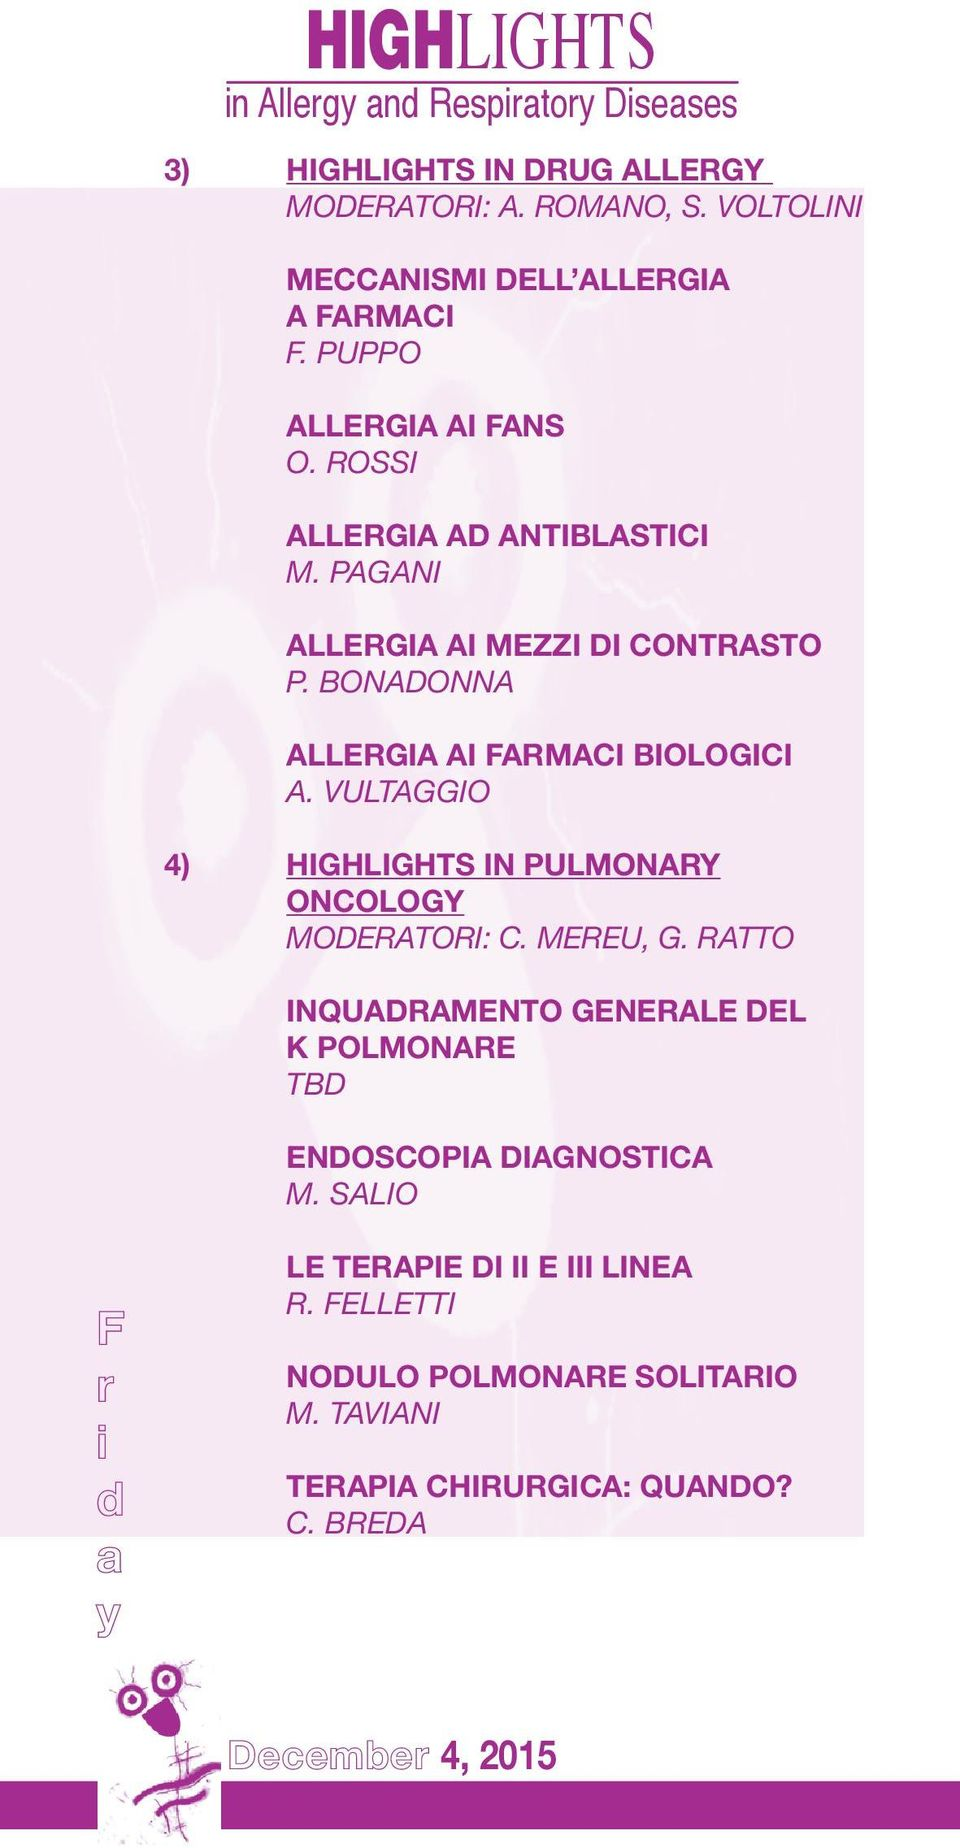 BONADONNA ALLERGIA AI FARMACI BIOLOGICI A. VULTAGGIO 4) HIGHLIGHTS IN PULMONARY ONCOLOGY MODERATORI: C. MEREU, G.